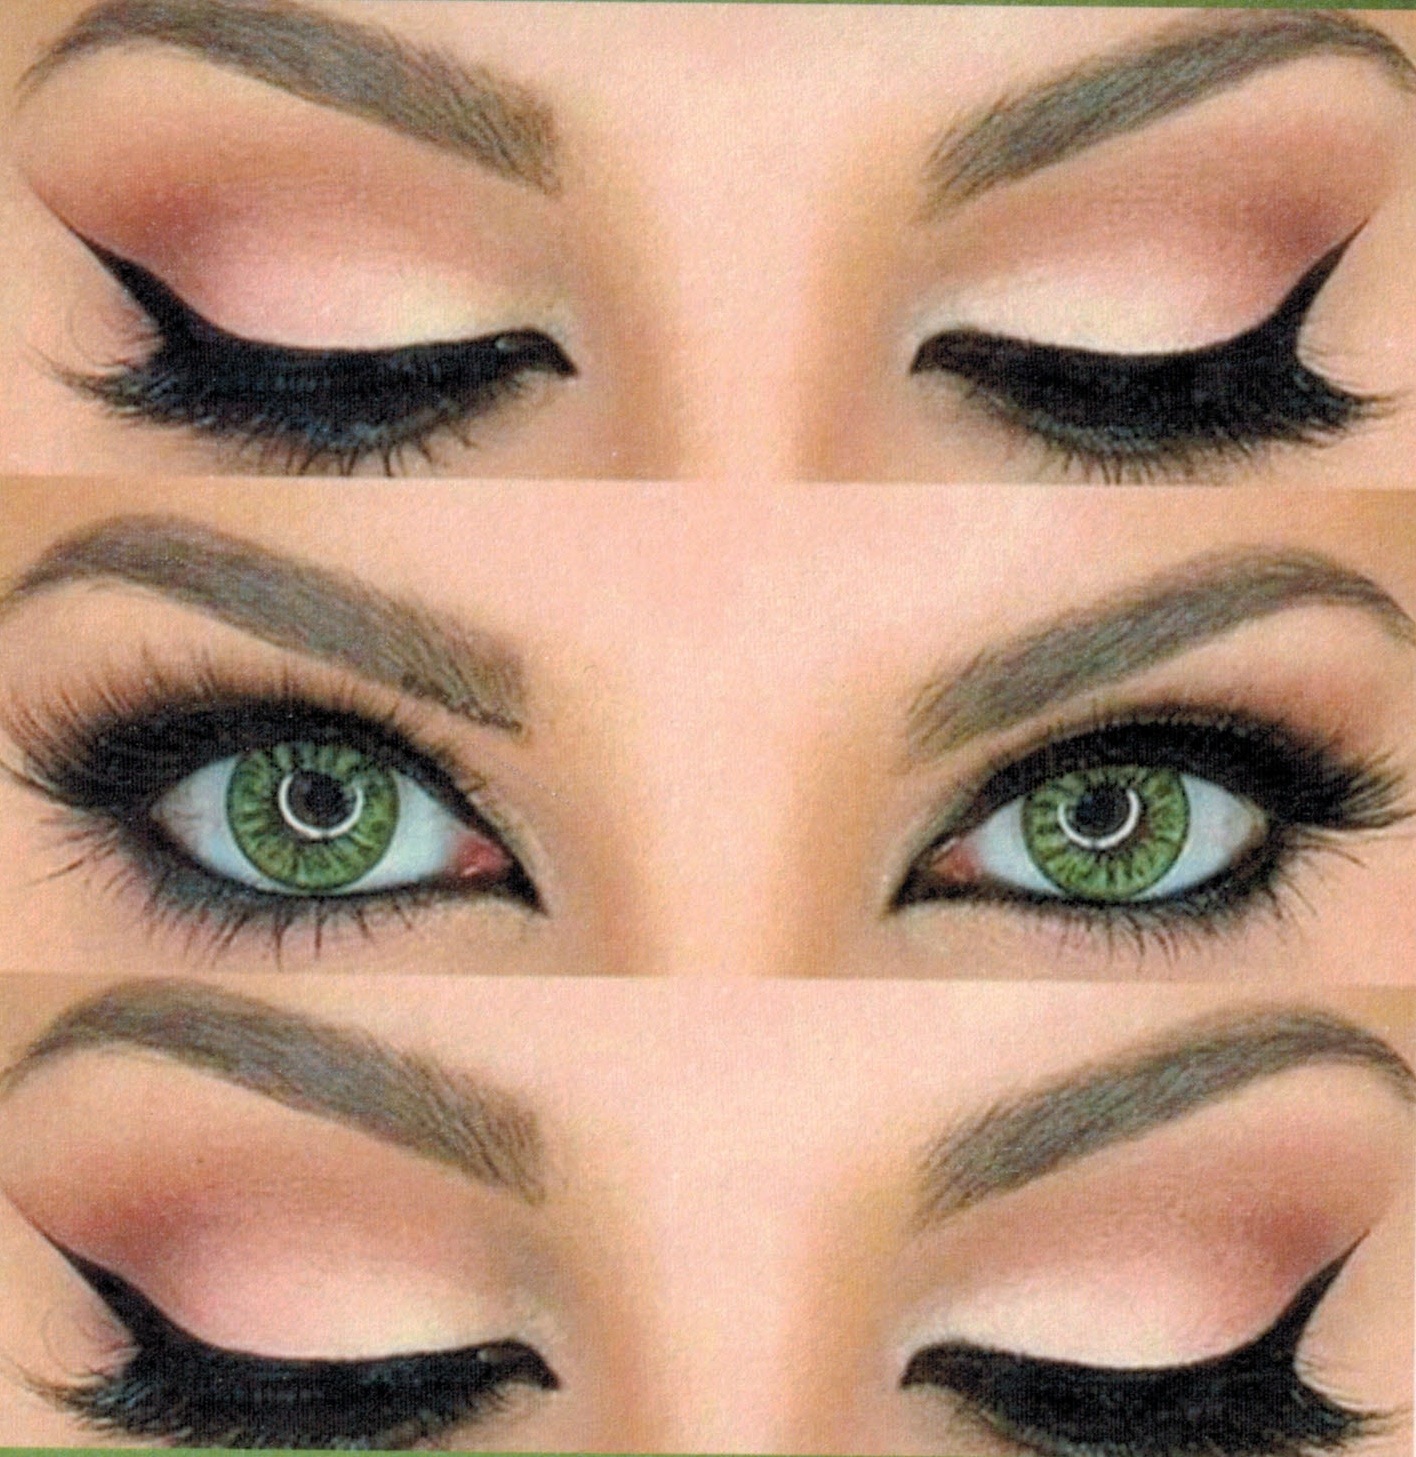 brow extensions